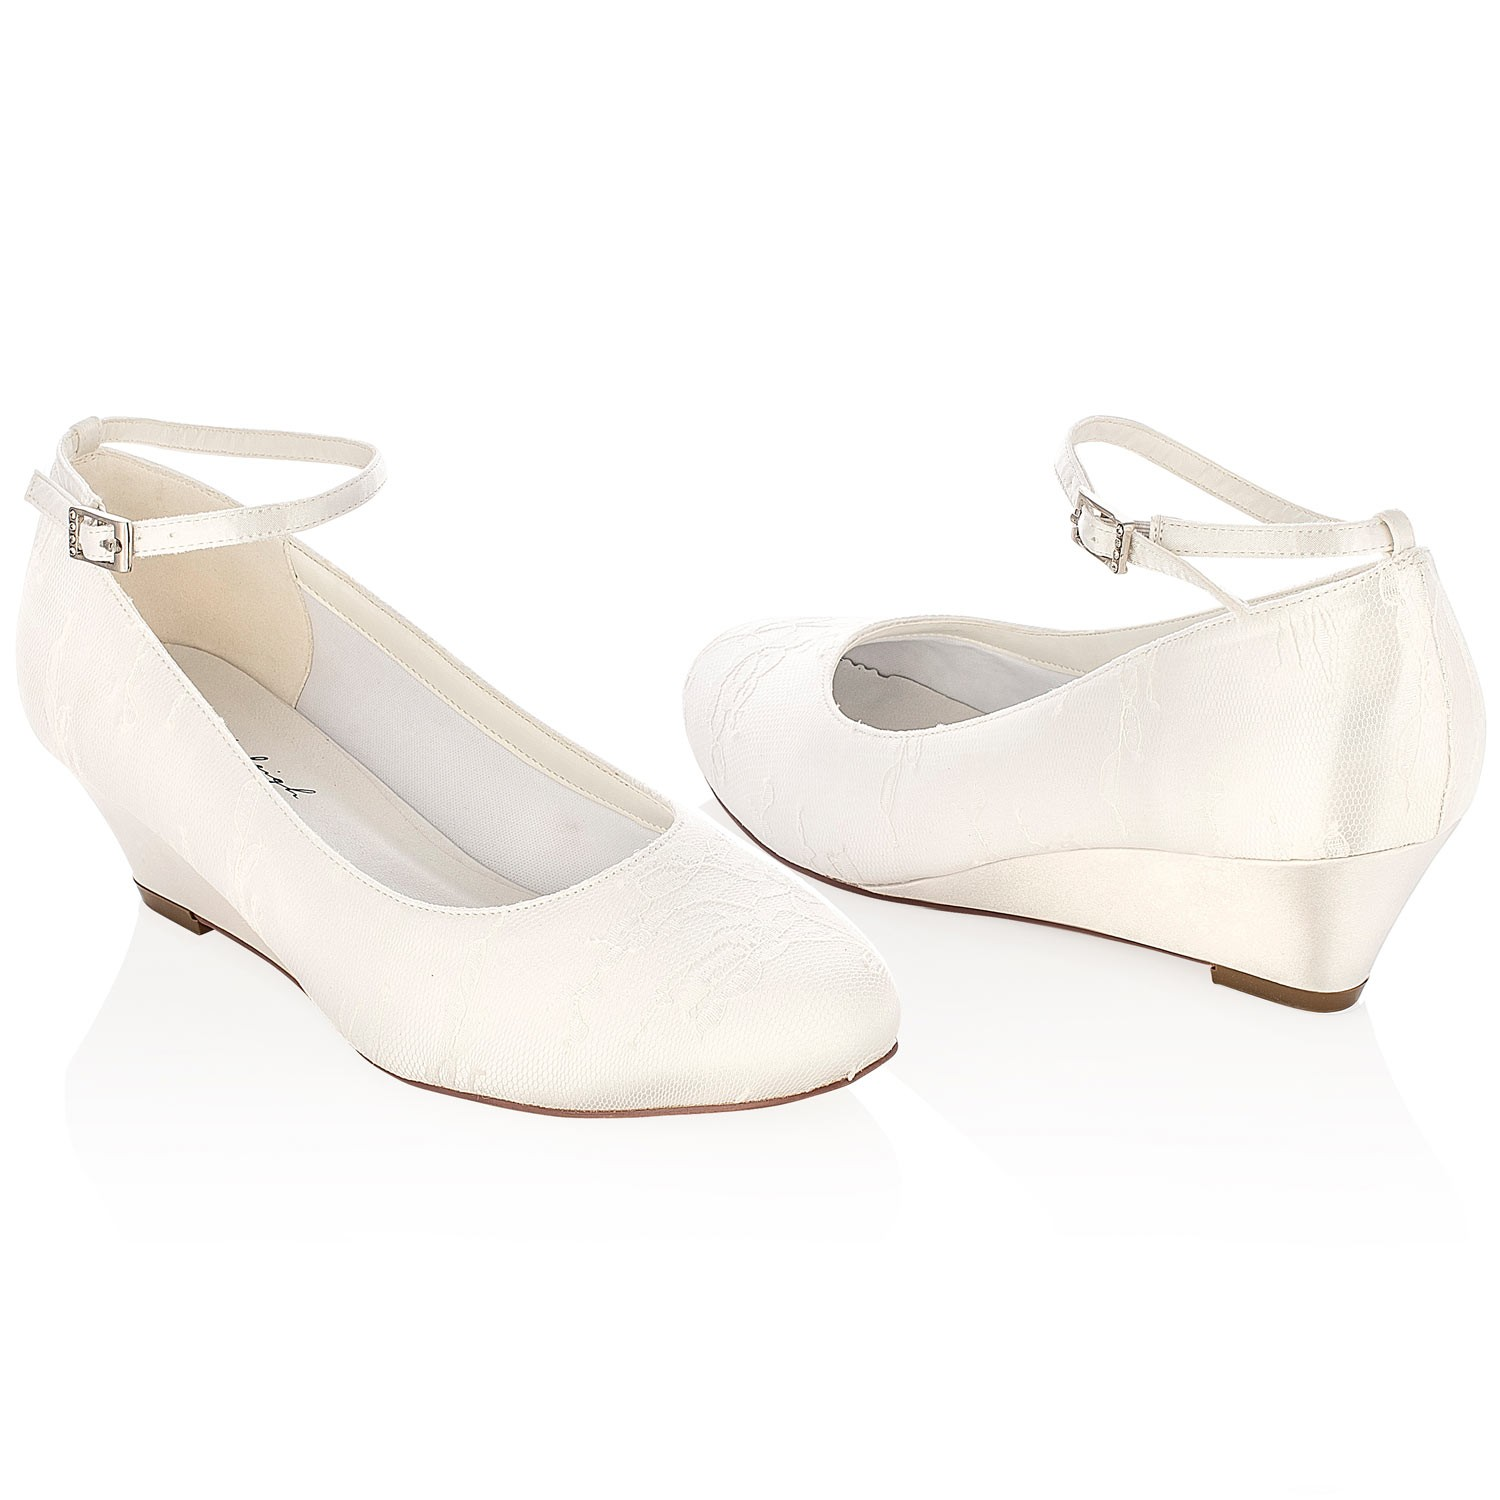 chaussure mariage ivoire talon compens iris - Chaussures Compenses Blanches Mariage